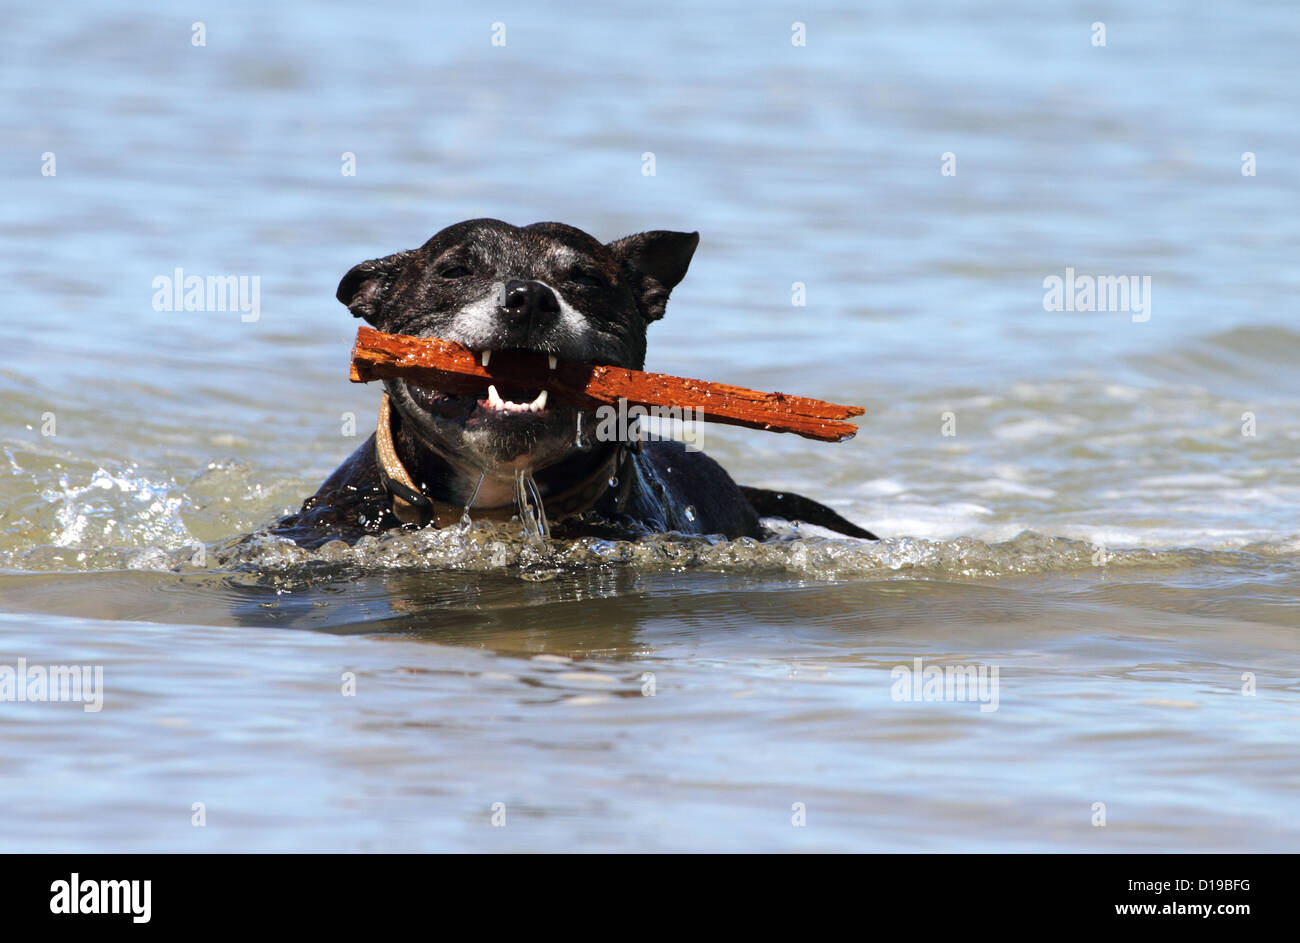 Staffordshire bull terrier swimming whilst carrying a stick - Stock Image